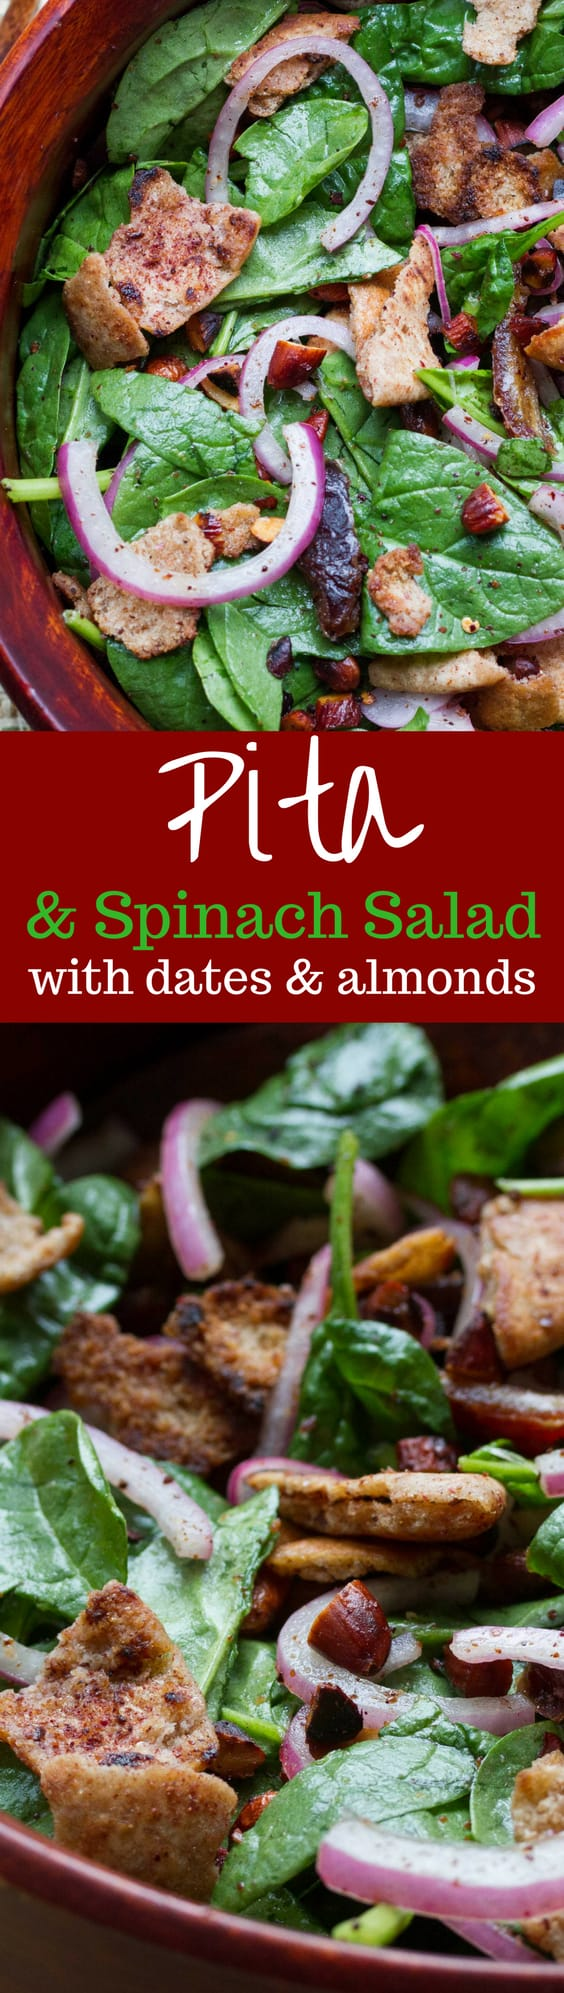 The past times 2 weeks accept been interesting Pita  Spinach salad alongside dates as well as almonds